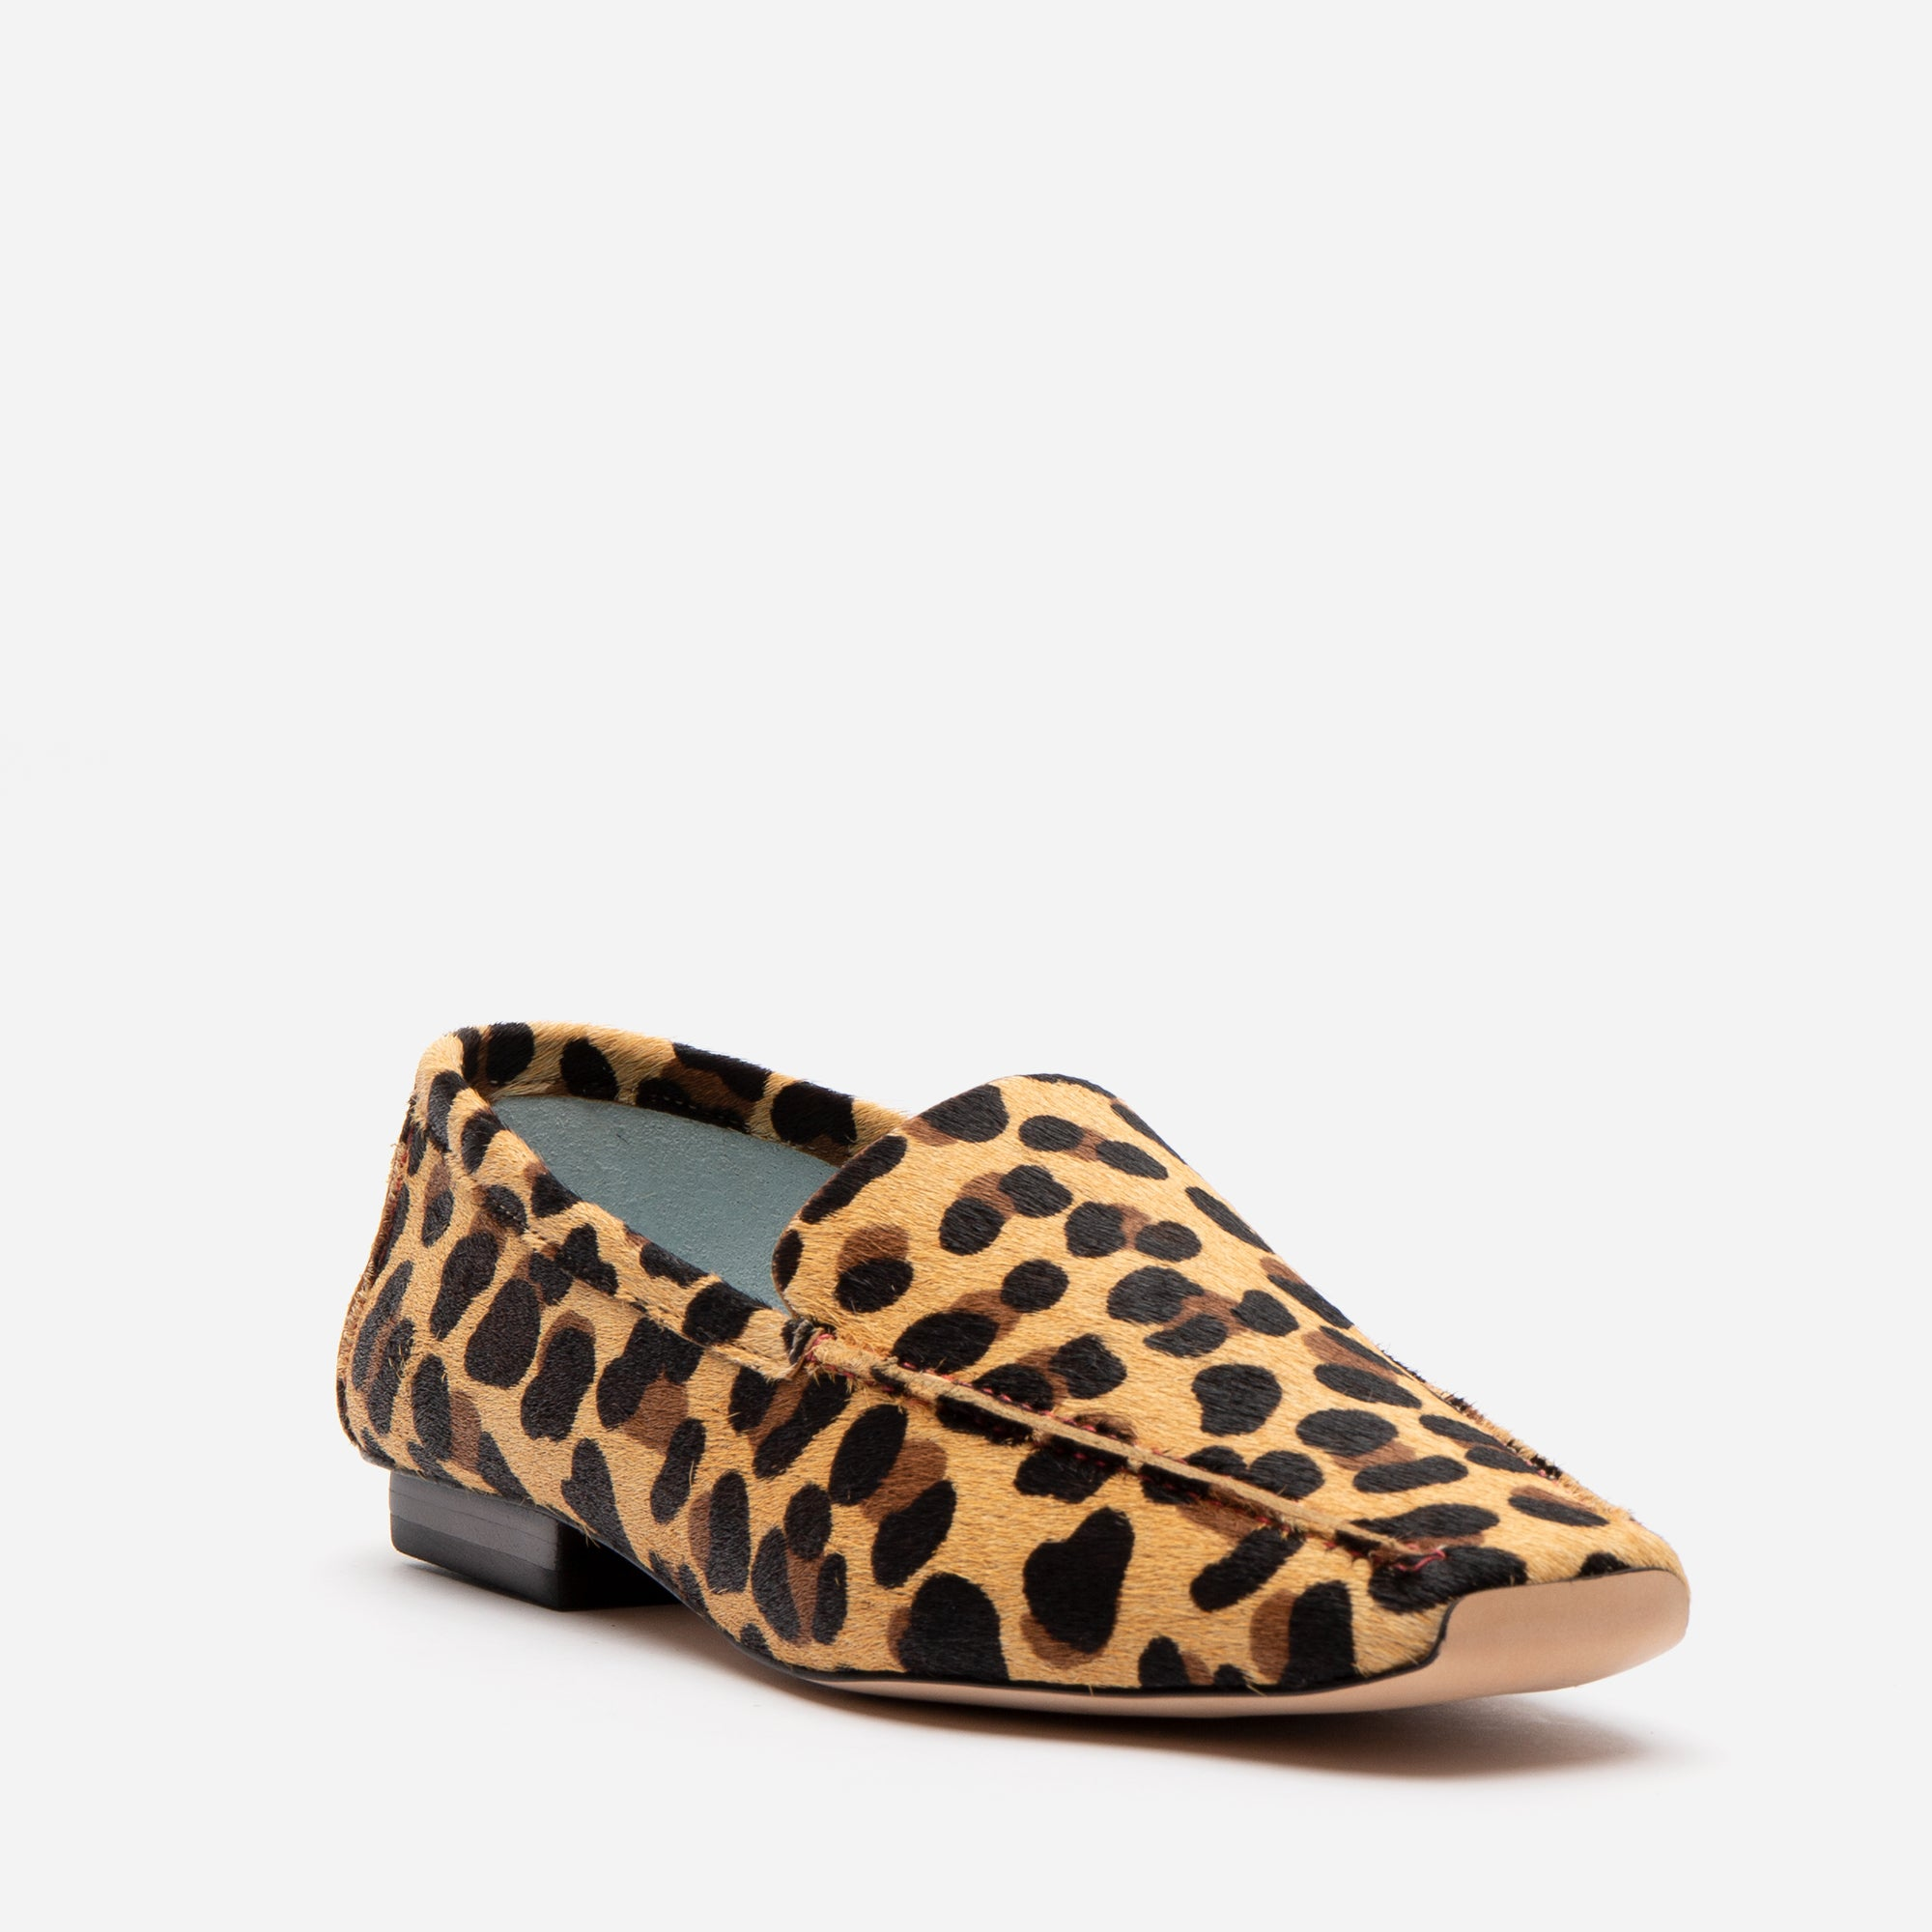 Elyce Loafer Leopard Printed Haircalf